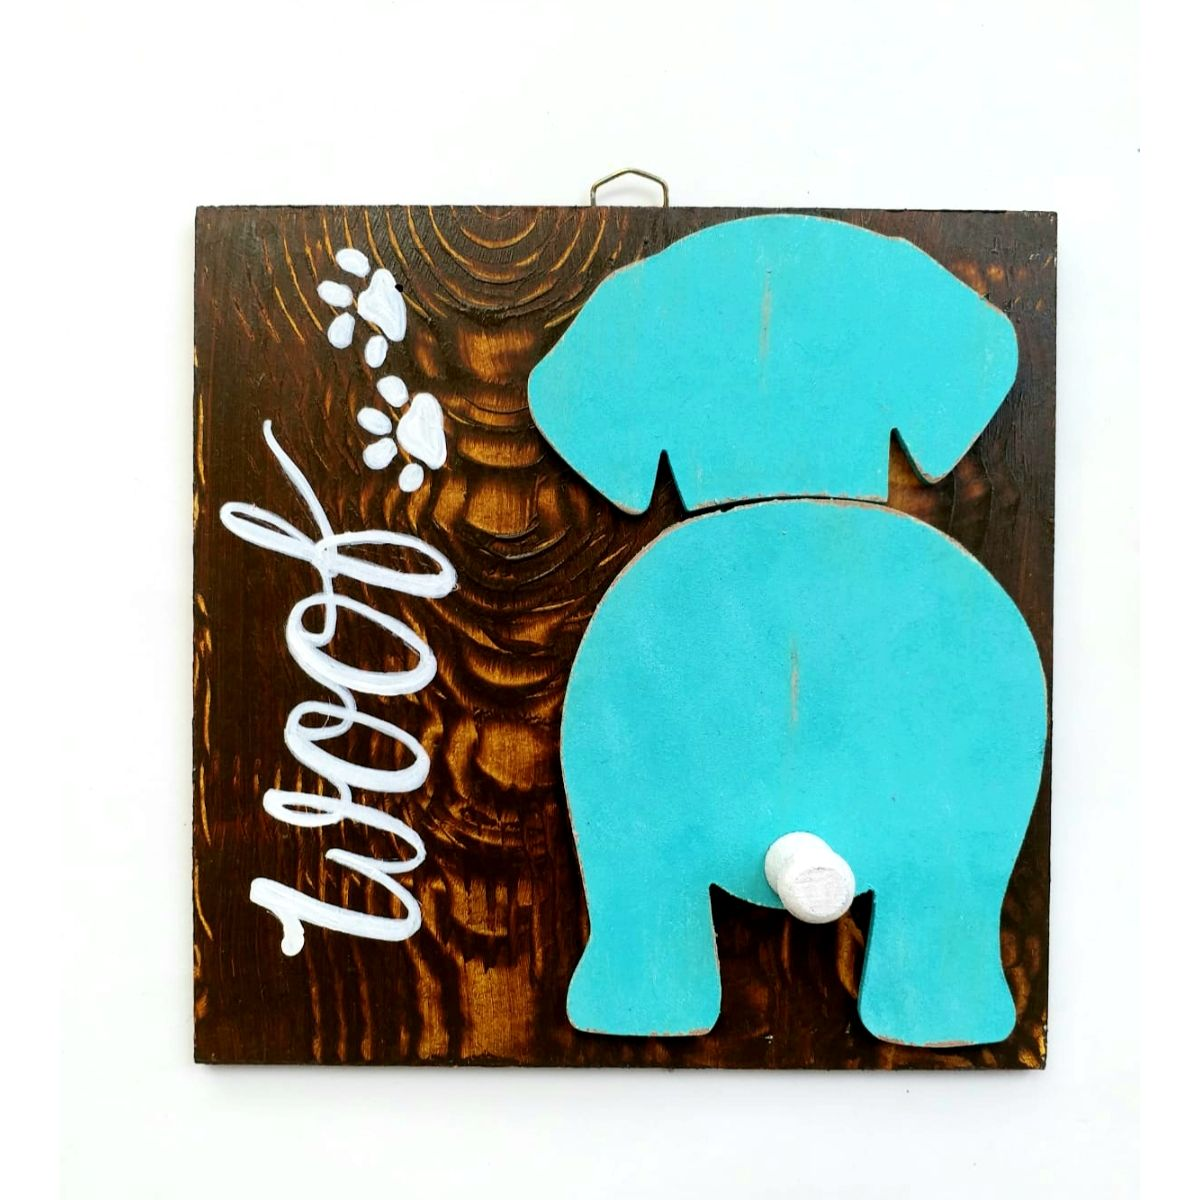 Handcrafted Wooden Dog Wall Decor  Utility  Wooden Dog Wall Decor